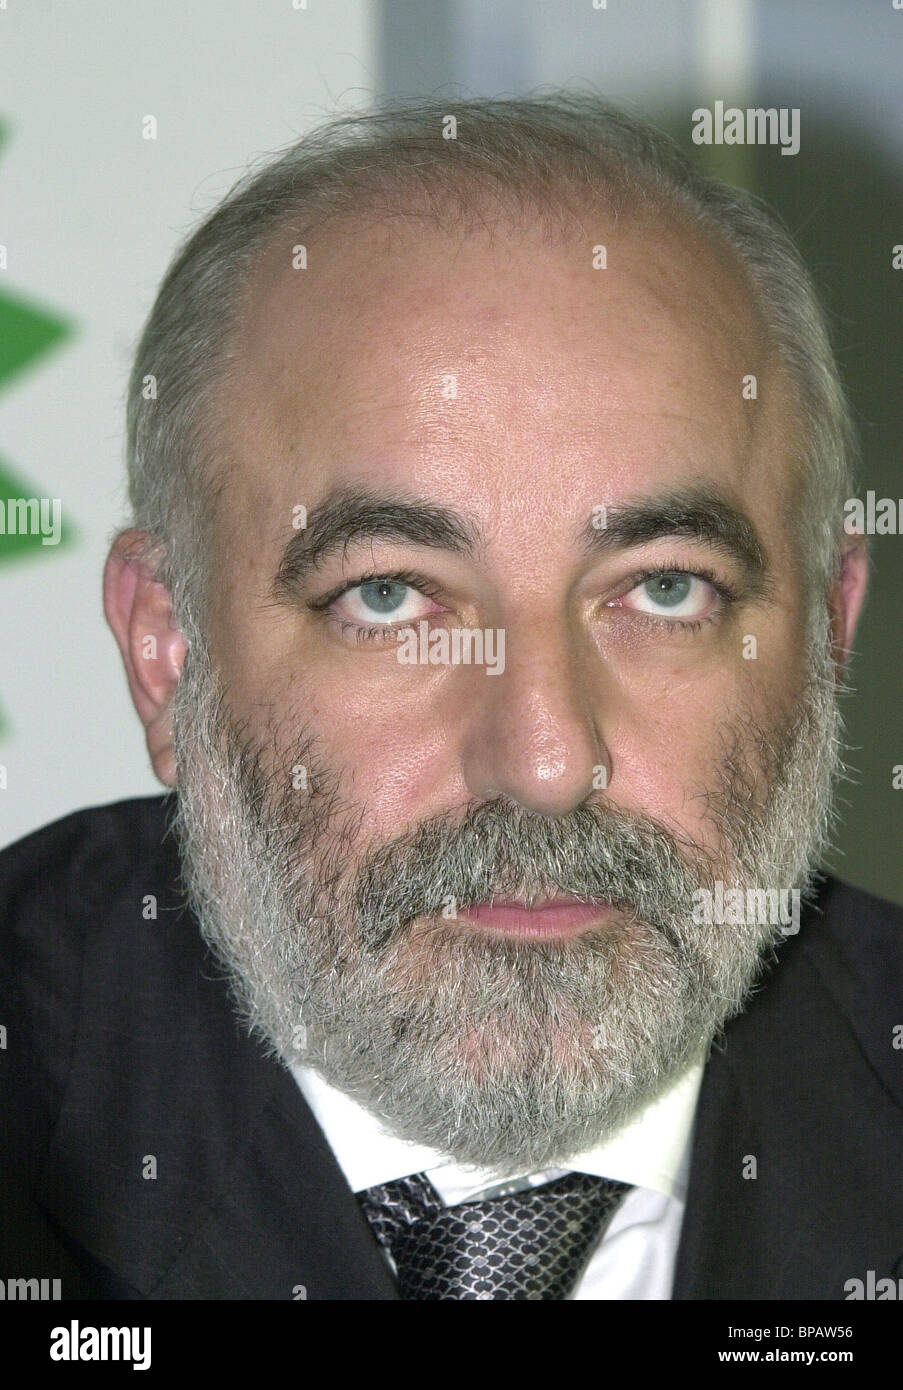 Press conference on TNK-BP company - Stock Image